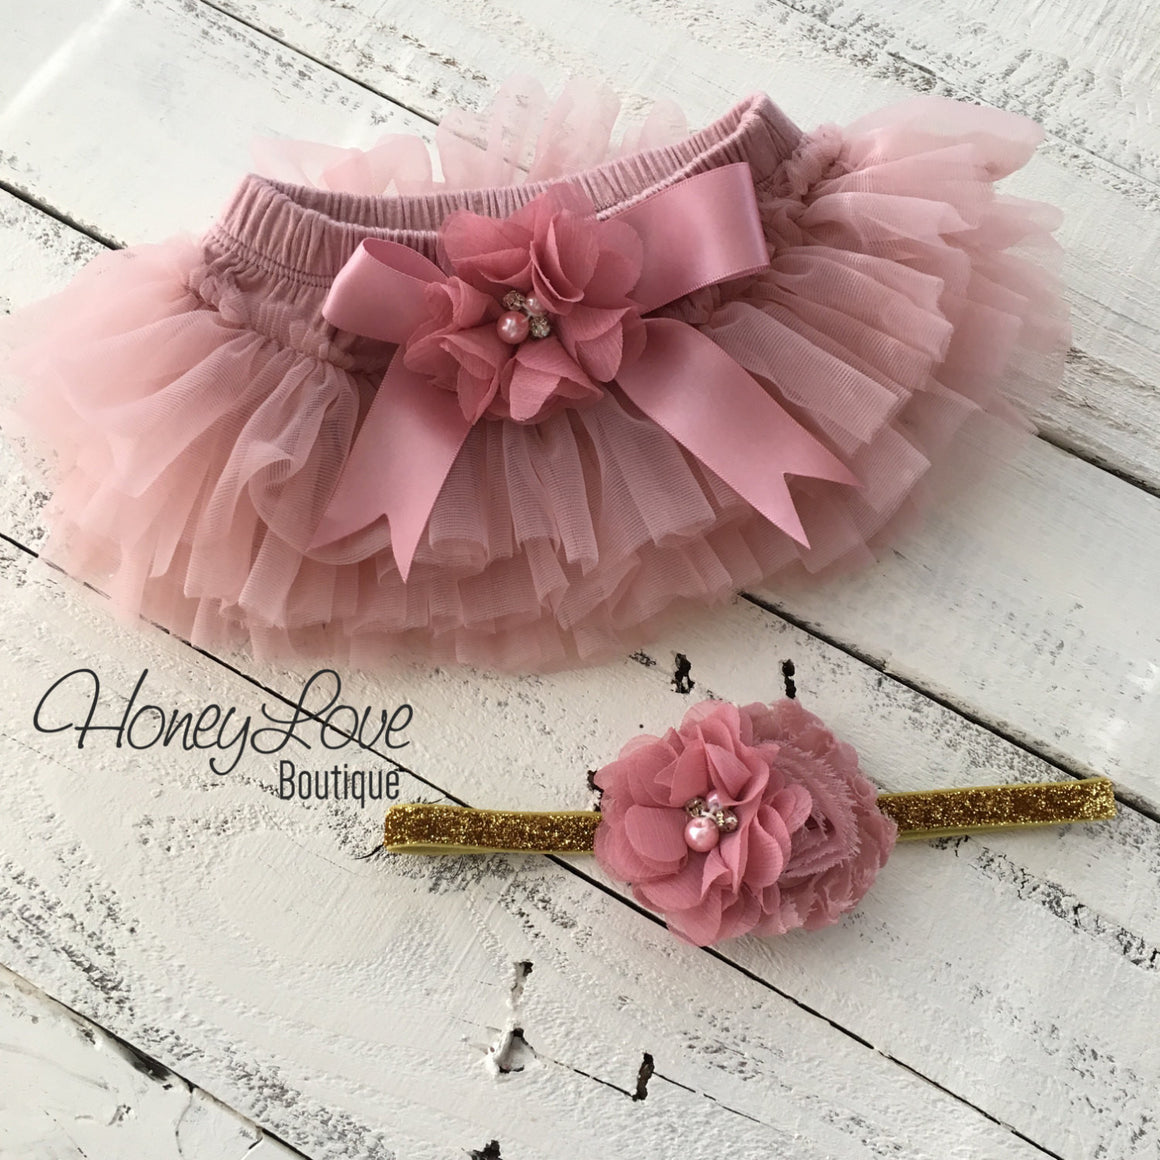 Vintage Pink tutu skirt bloomers and gold glitter headband - embellished bloomers - HoneyLoveBoutique